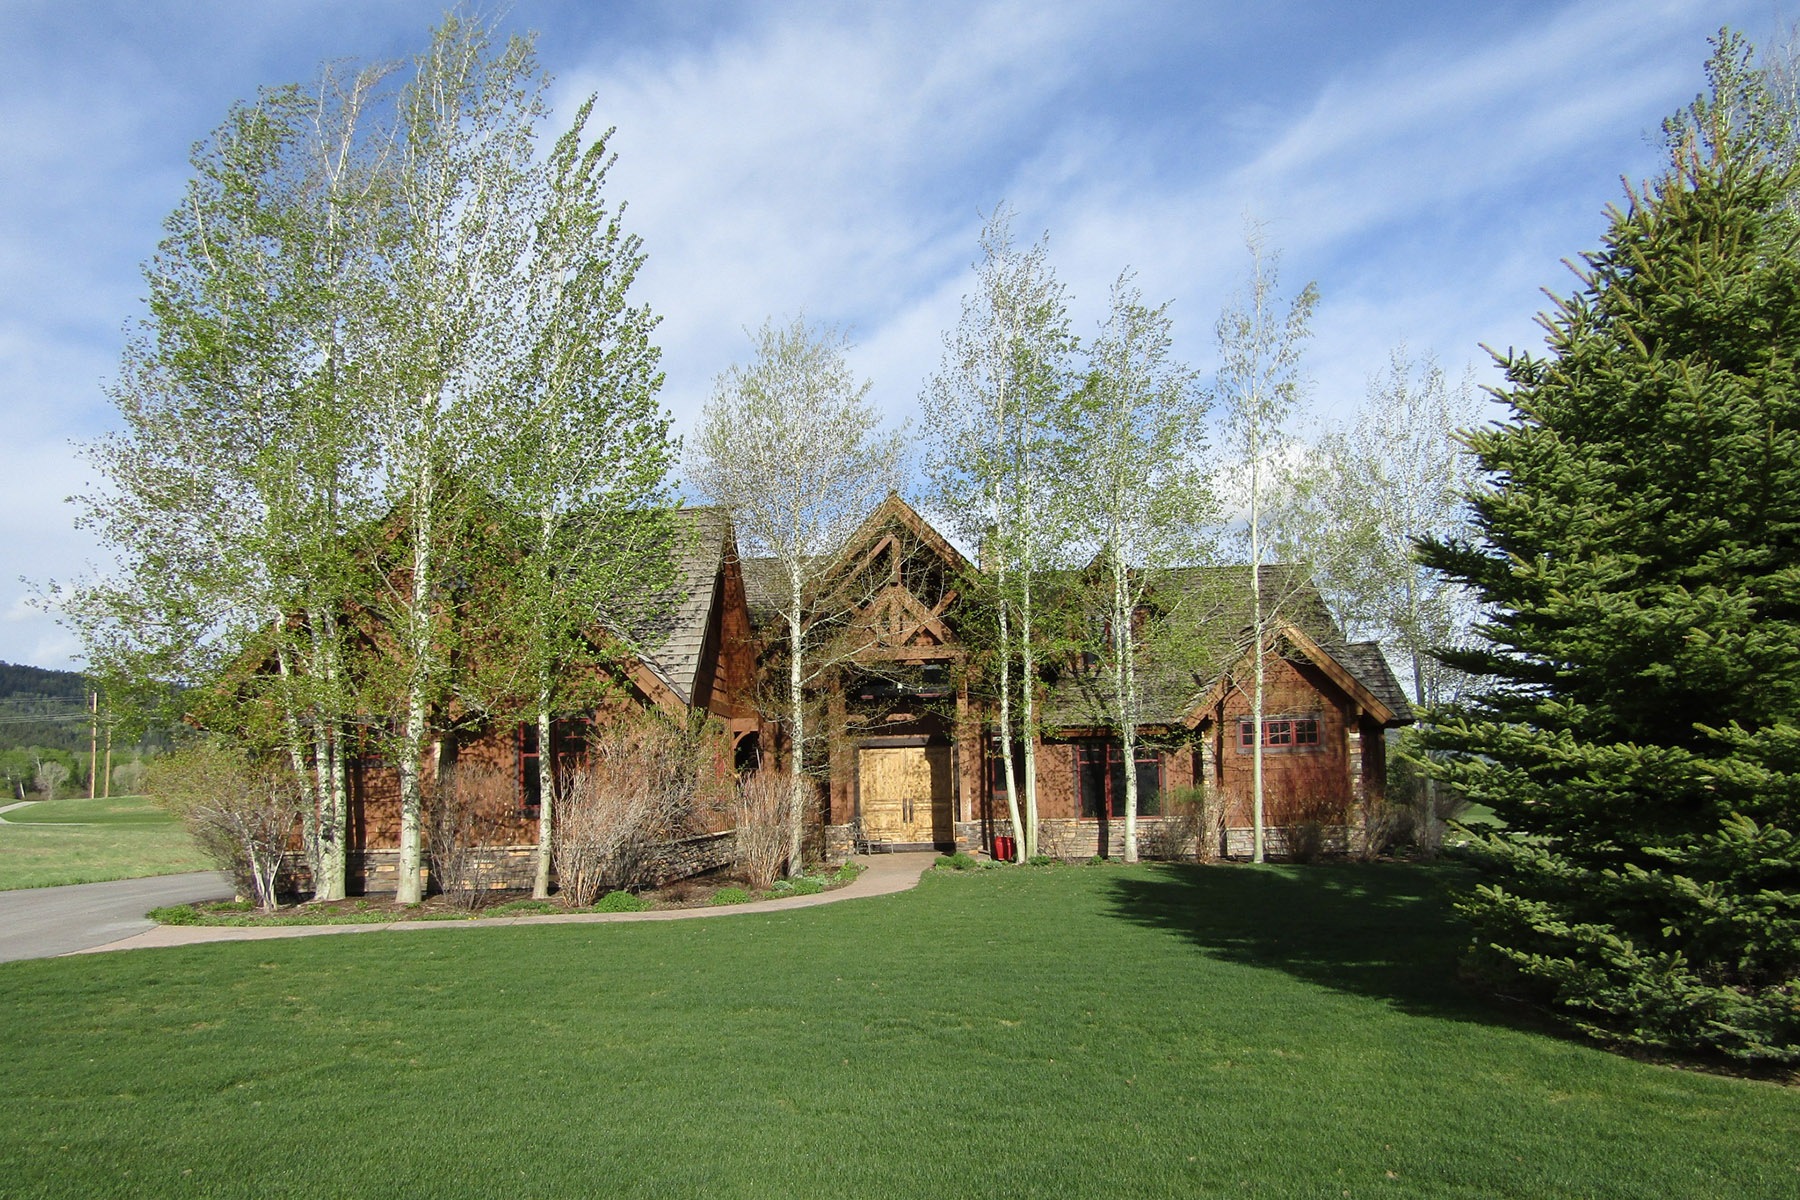 Single Family Homes for Sale at Teton Springs Elegance on the 7th Hole 8 Winger Cir Victor, Idaho 83455 United States